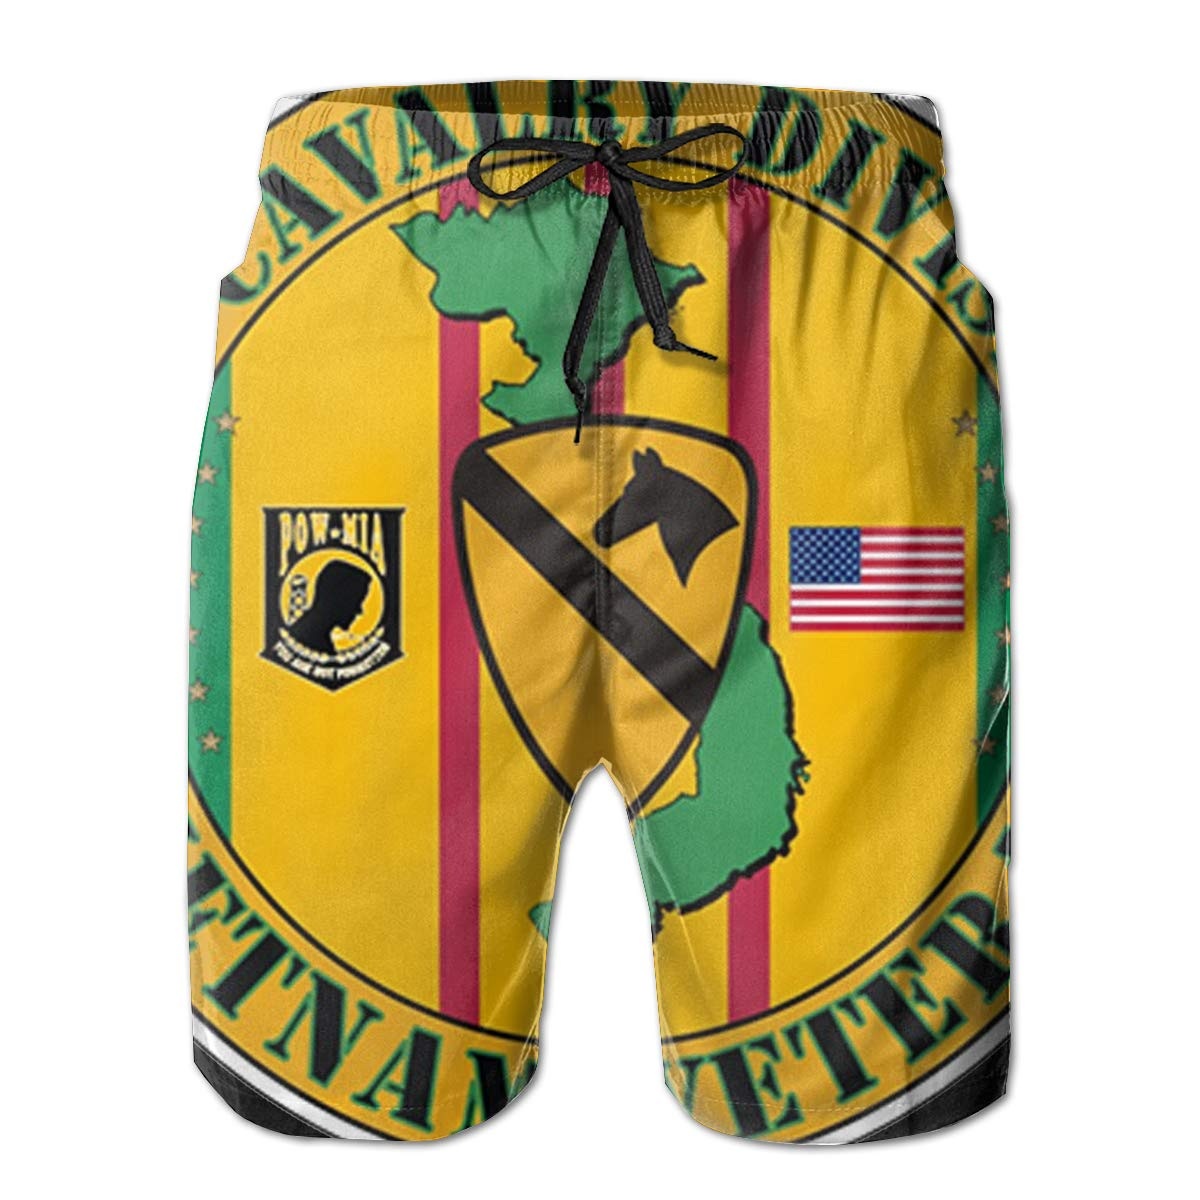 1st Cavalry Division Vietnam Veteran 3D Print Mens Beach Shorts Swim Trunks Workout Shorts Summer Shorts